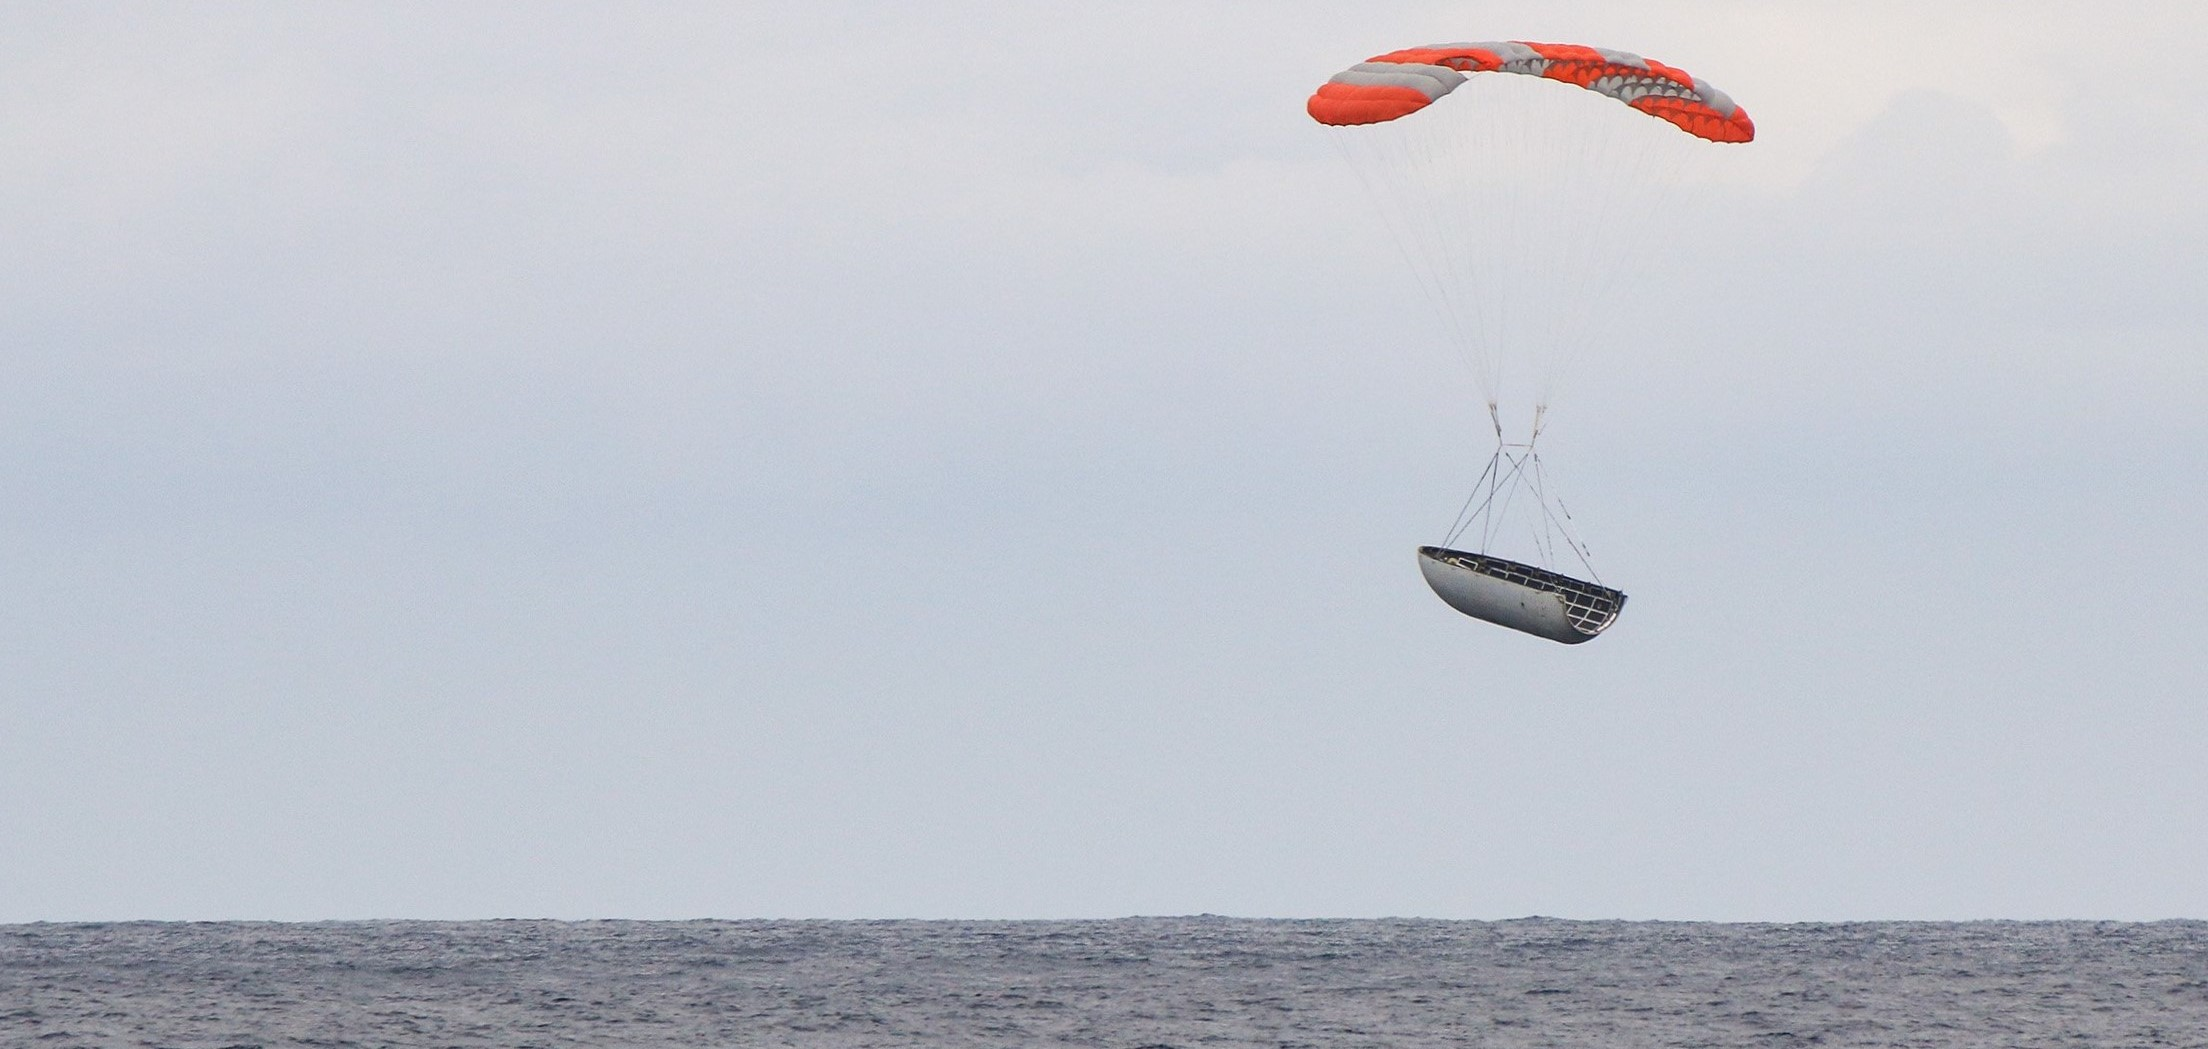 Falcon fairing recovery (SpaceX) 1 crop